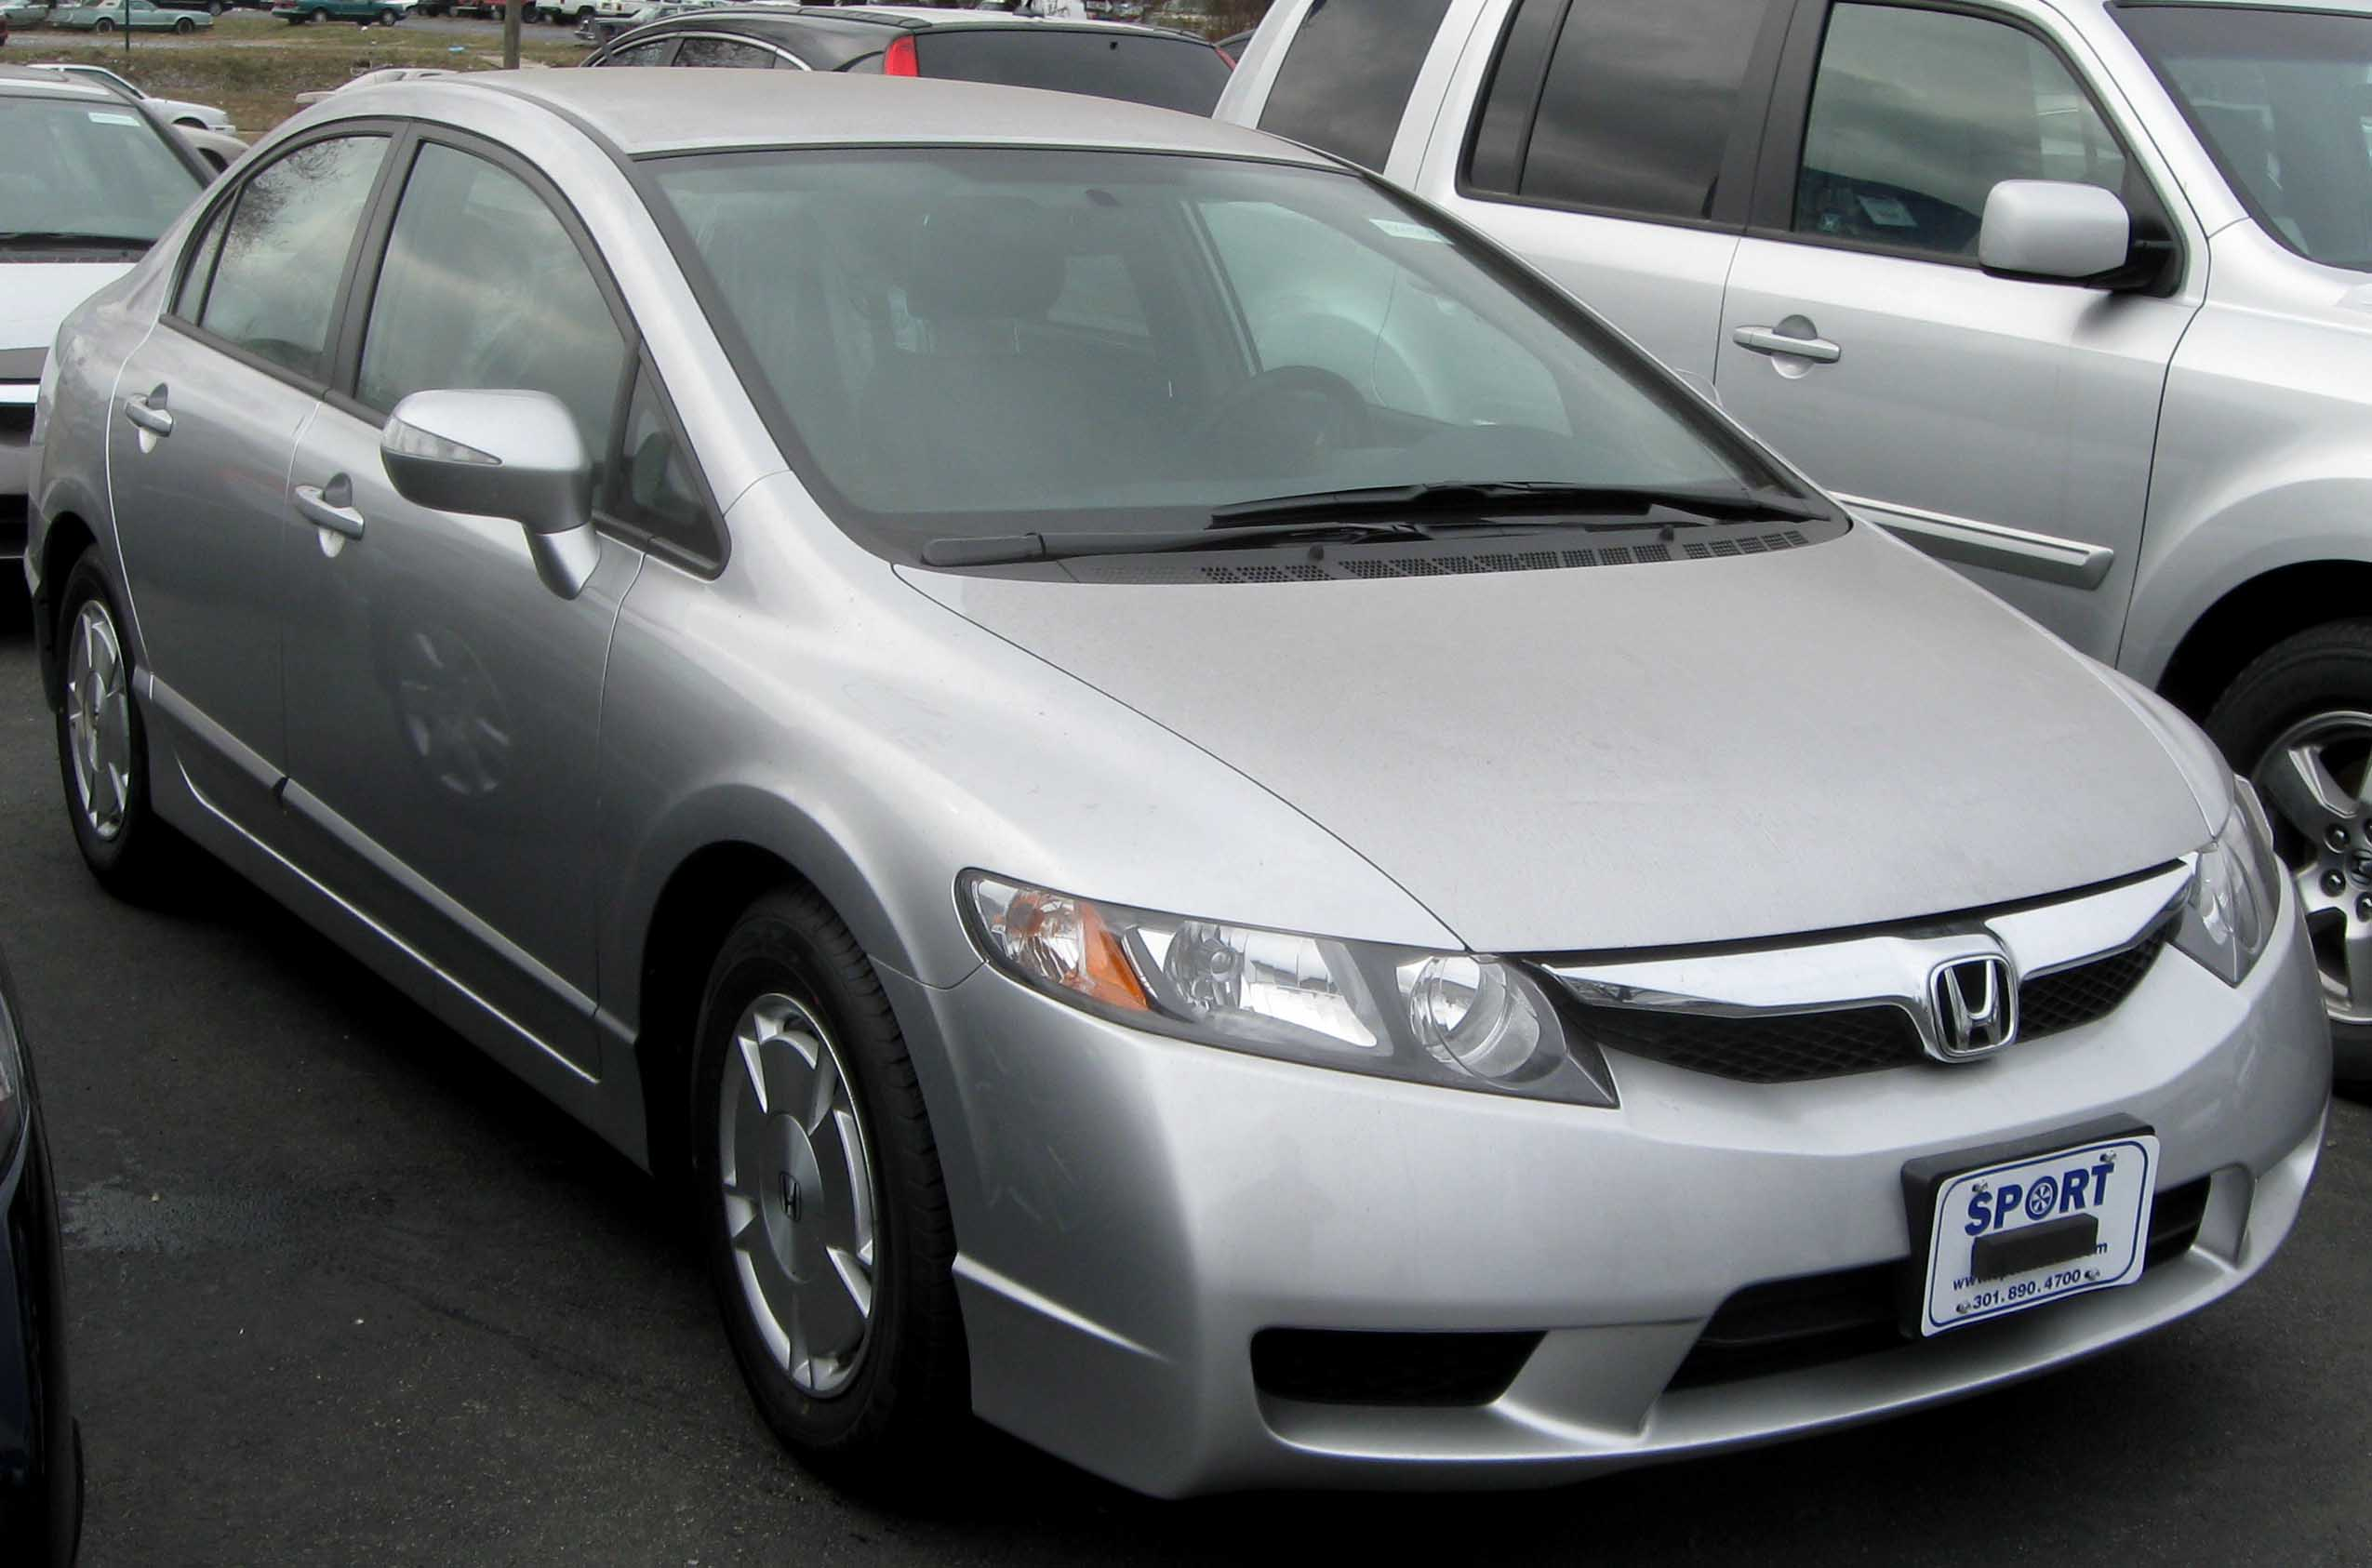 Captivating File:2009 Honda Civic Hybrid